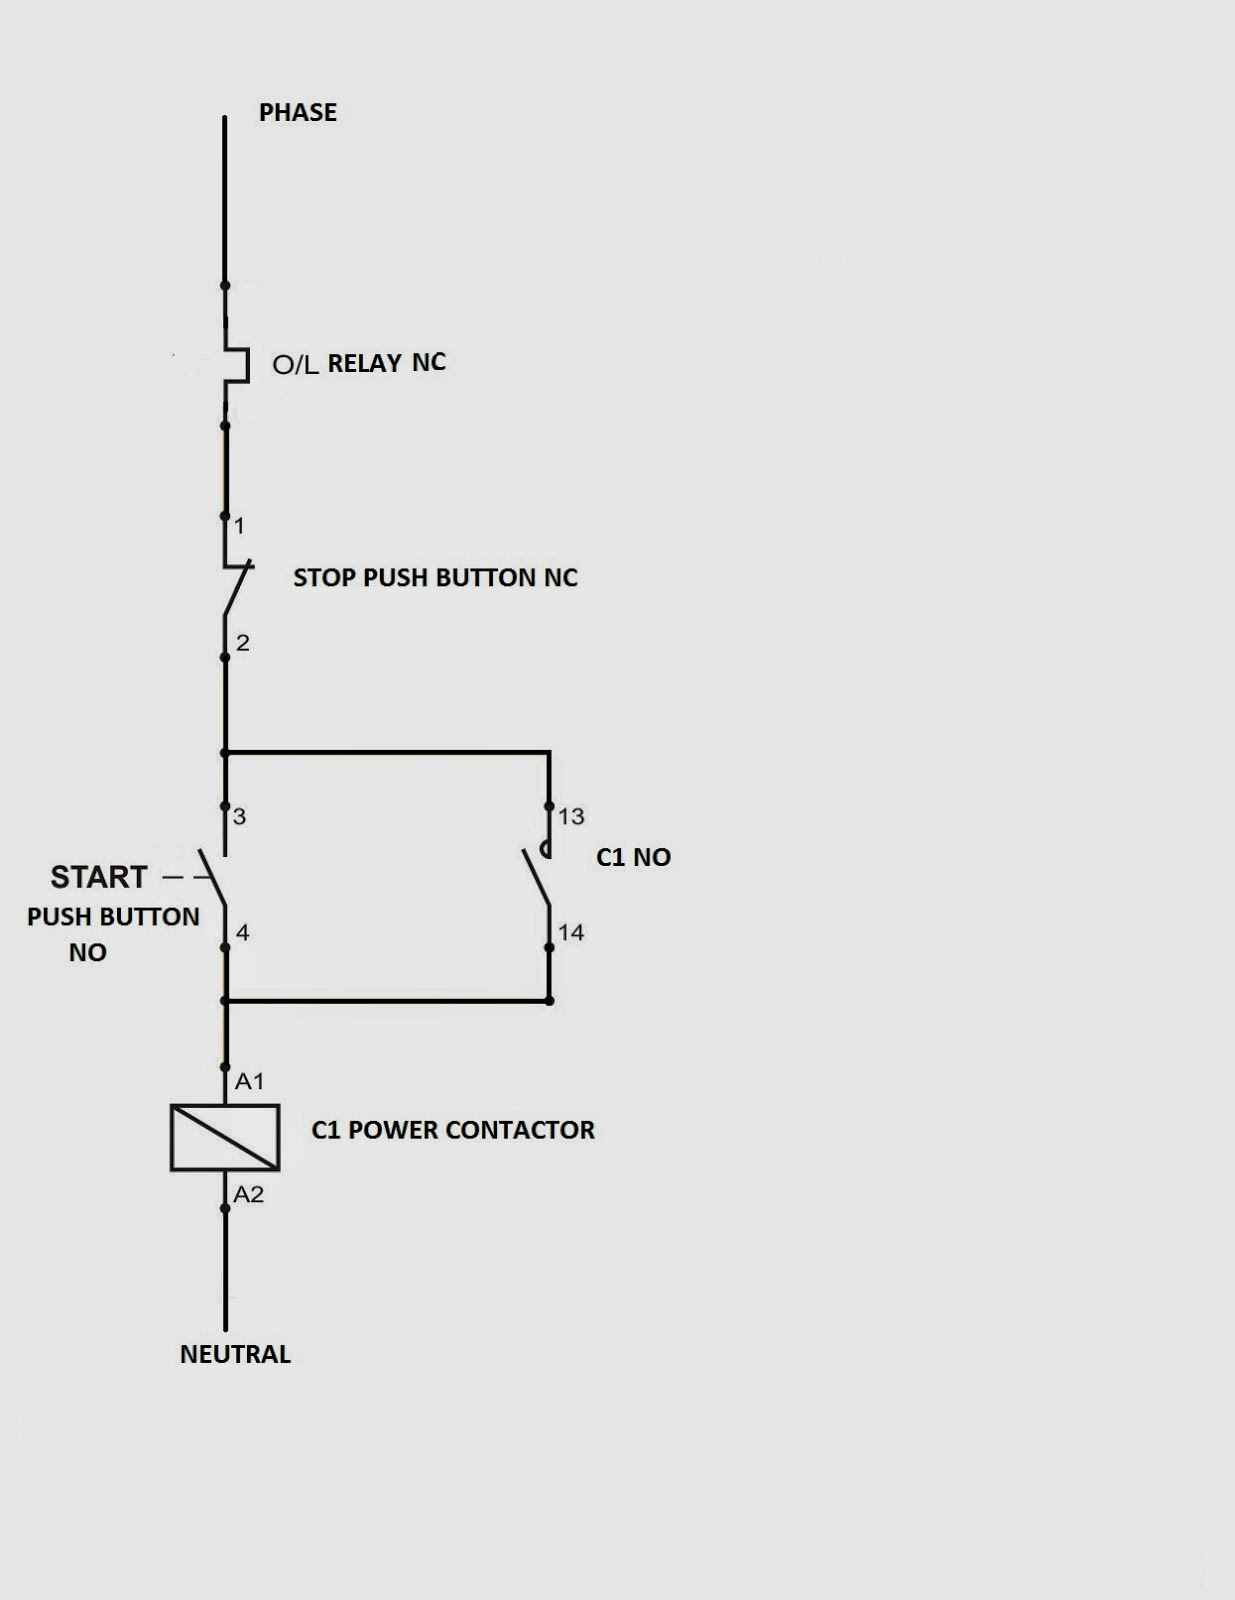 0EFD36 Control Wiring Diagram For Dol Starter | Wiring ResourcesWiring Resources